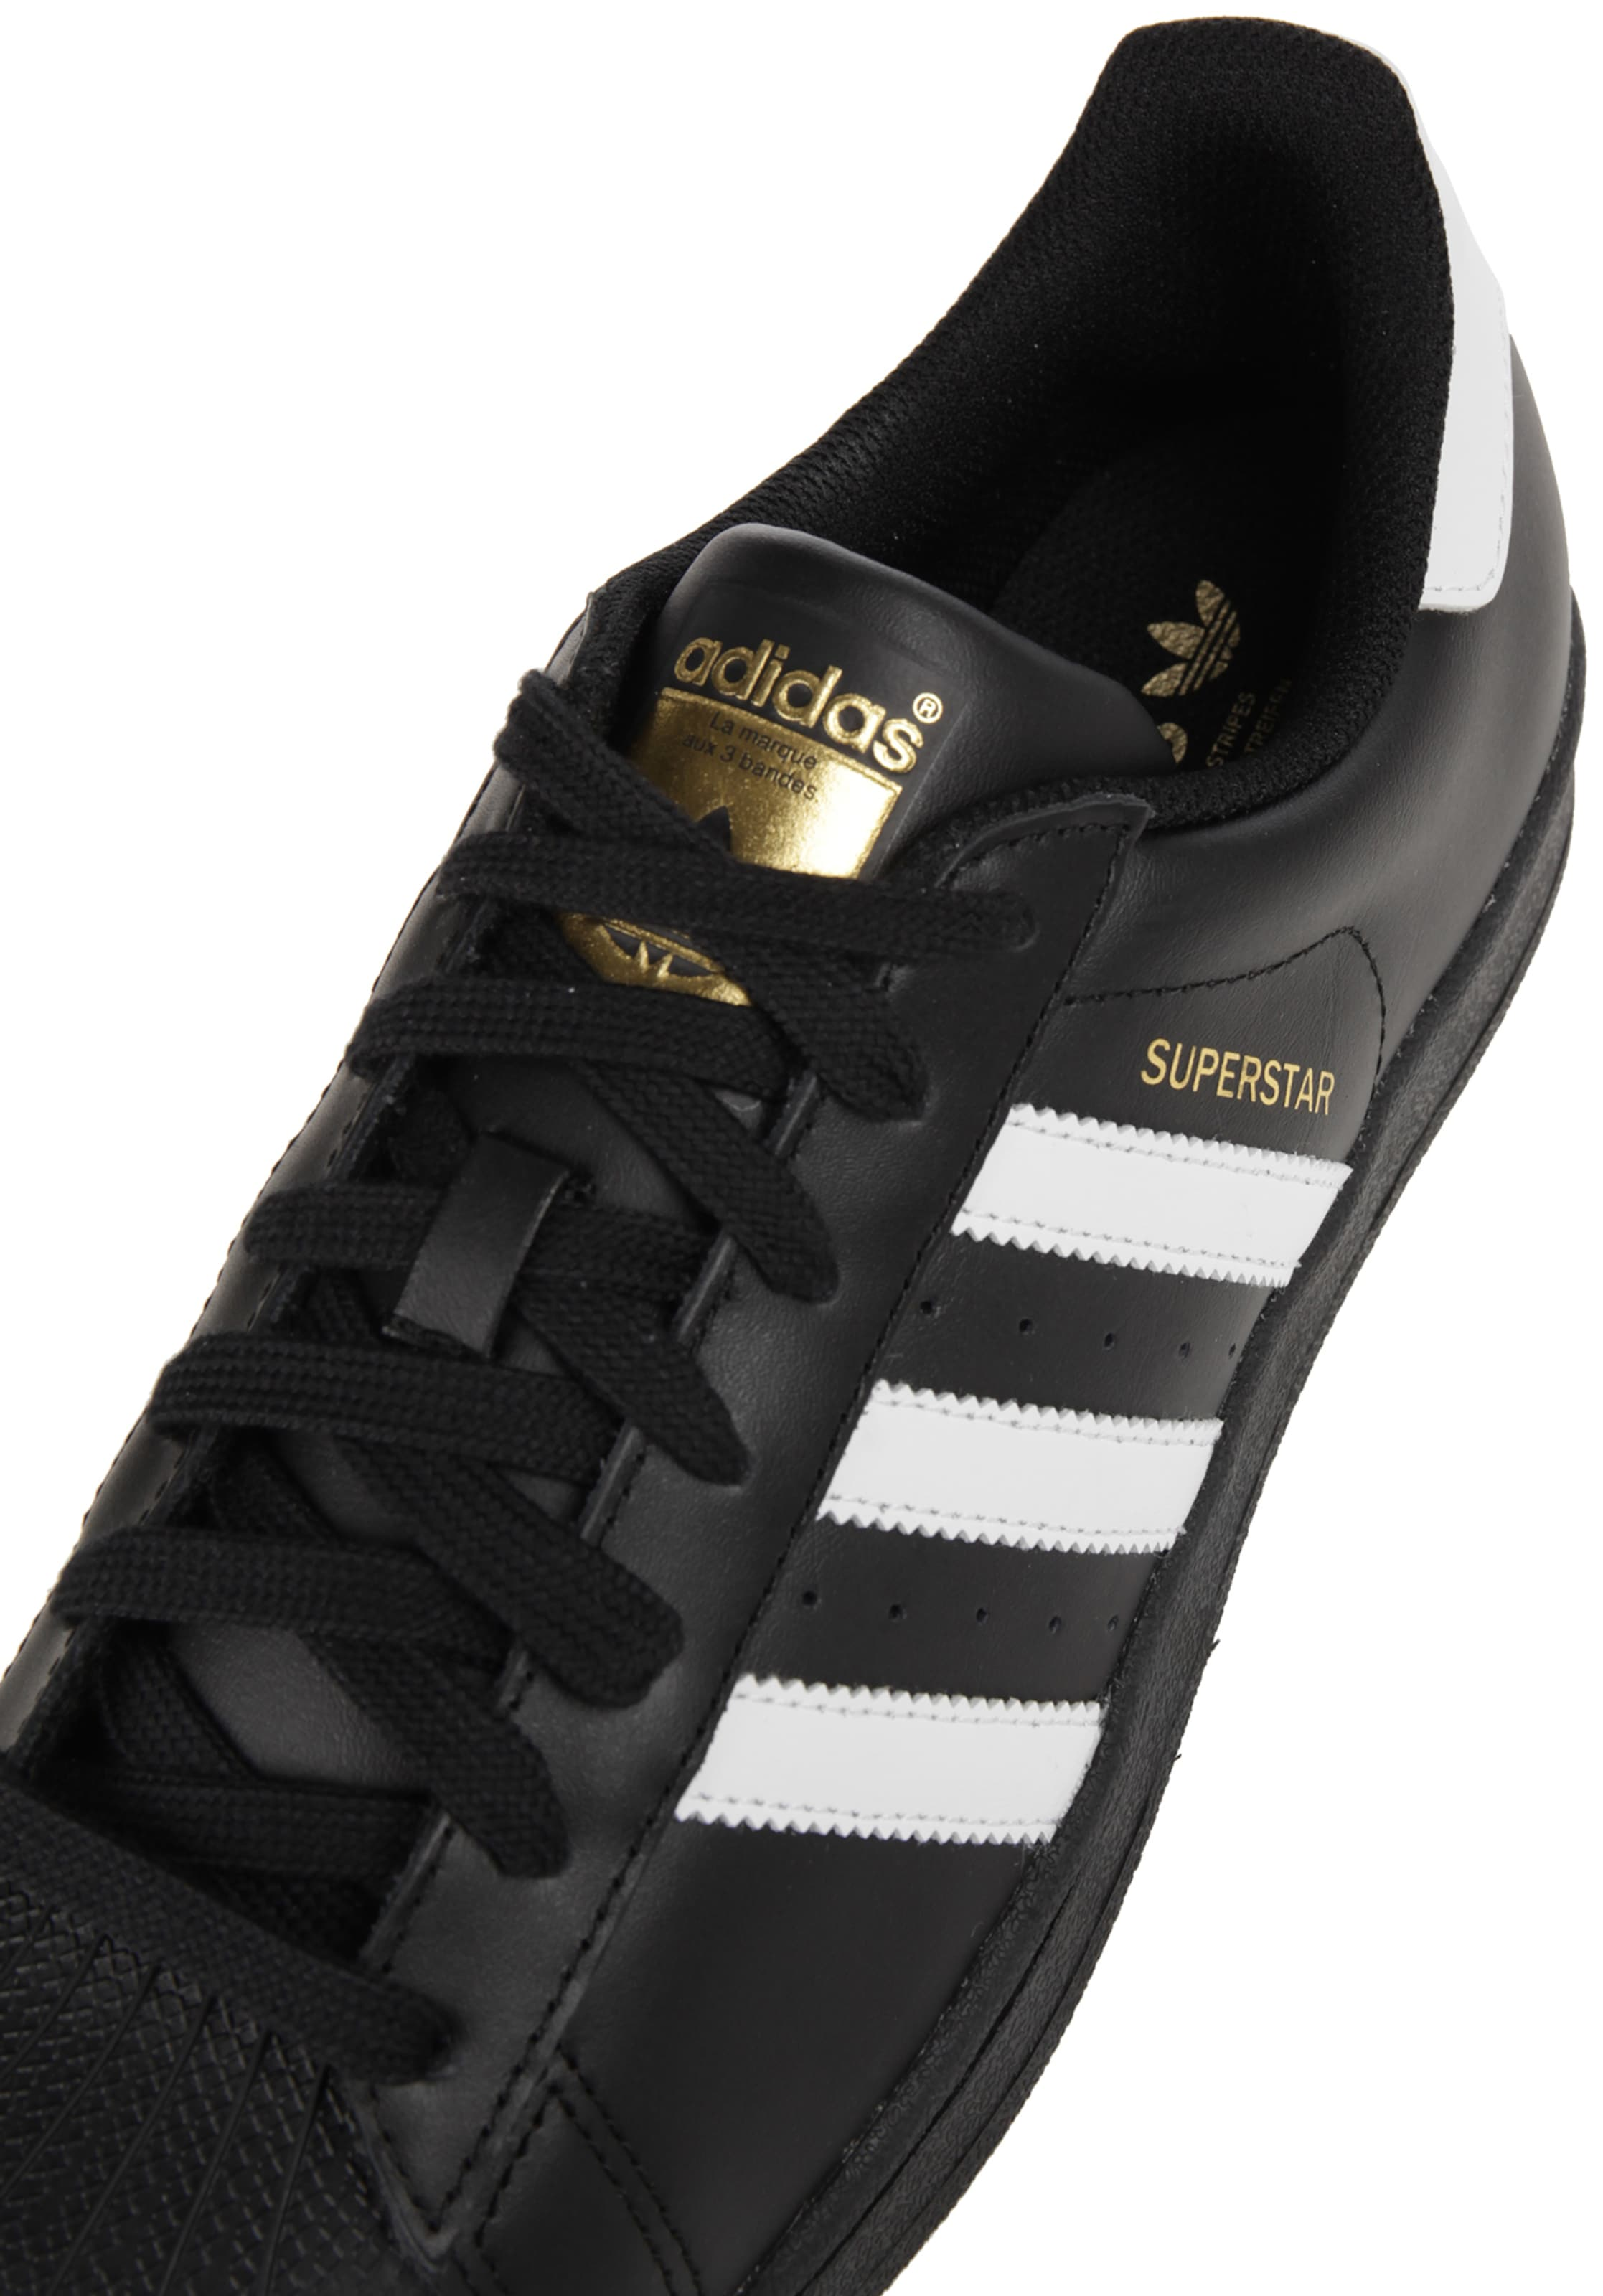 Originals 'superstar' Sneaker Adidas SchwarzWeiß In vIbgYf6y7